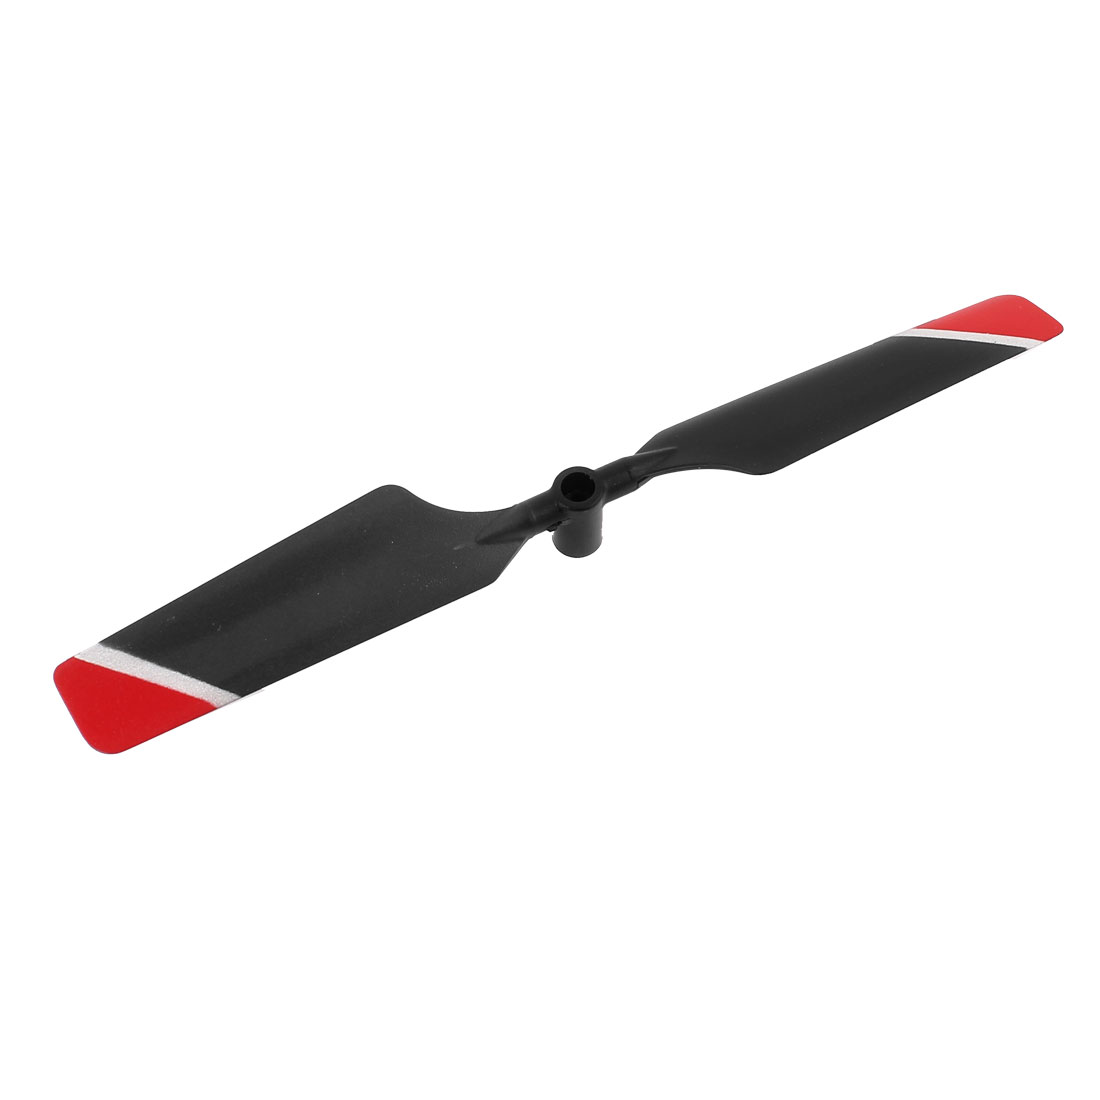 Plastic Spare Parts Tail Vane Prop for Double Horse 9104 RC Helicopter Red